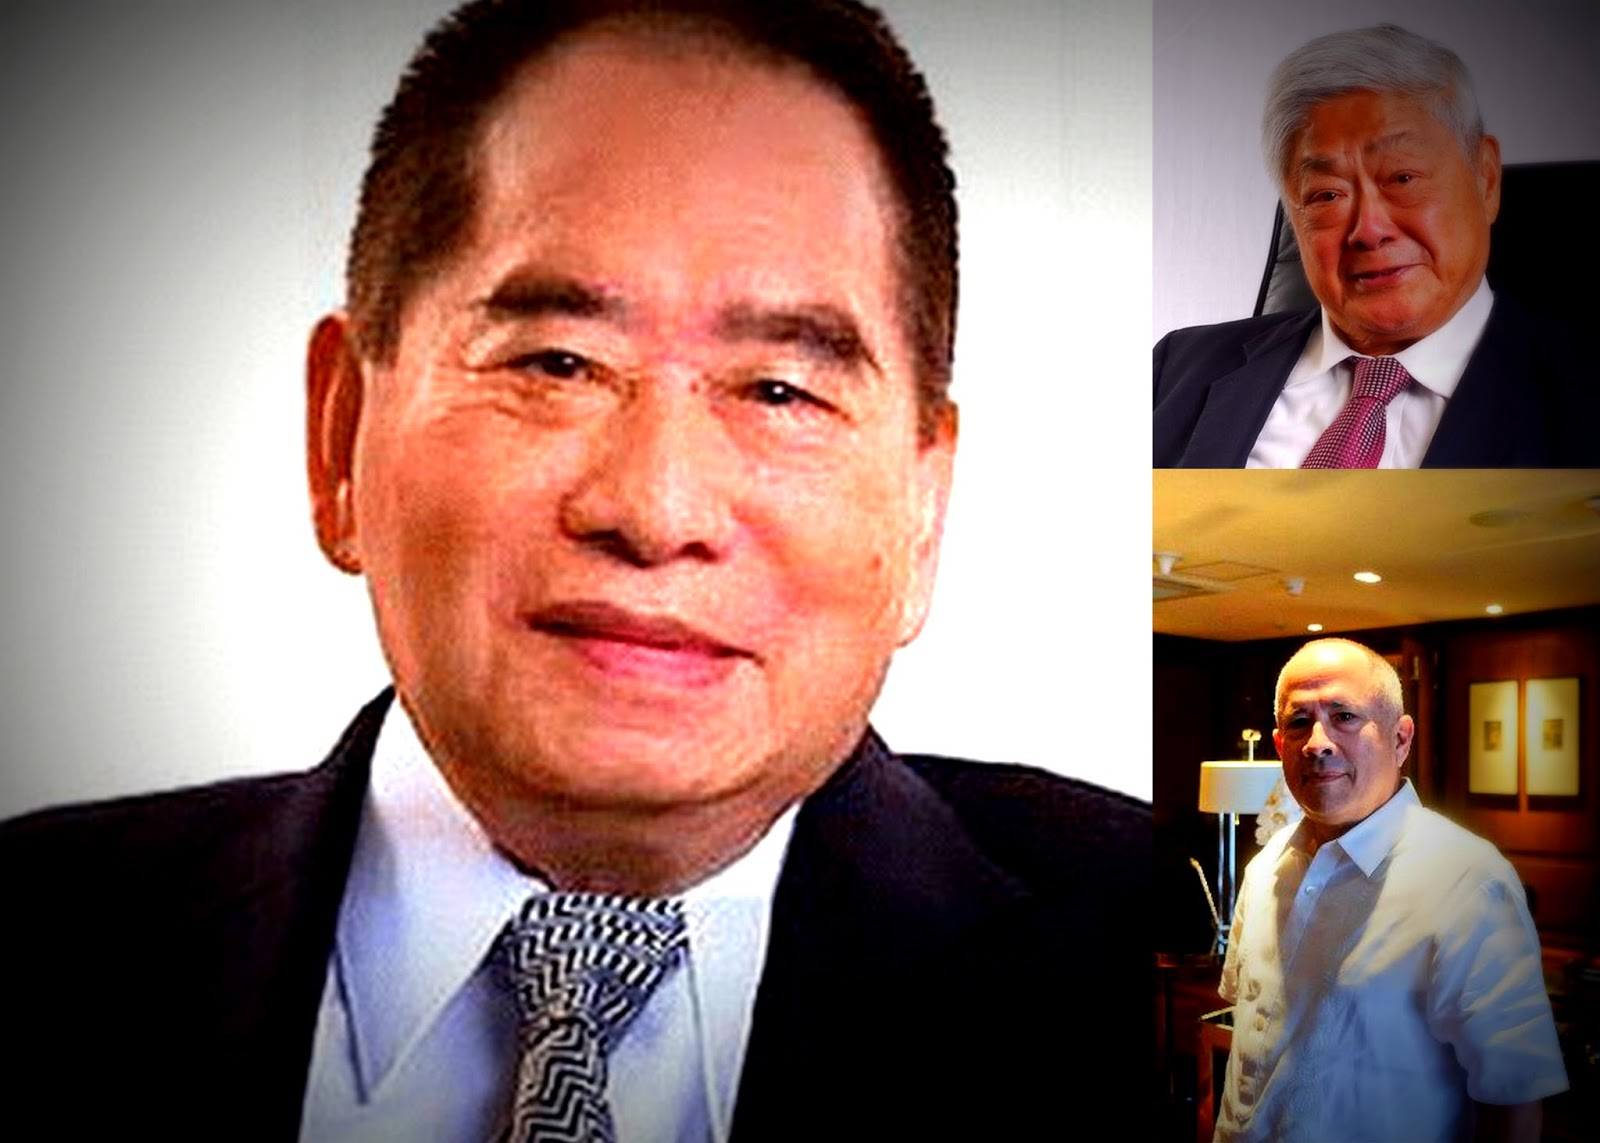 henry sy over john gokongwei Sy family on forbes henry sy, the philippines' richest person, started out with a small shoe store in manila and built it into mall developer sm prime.